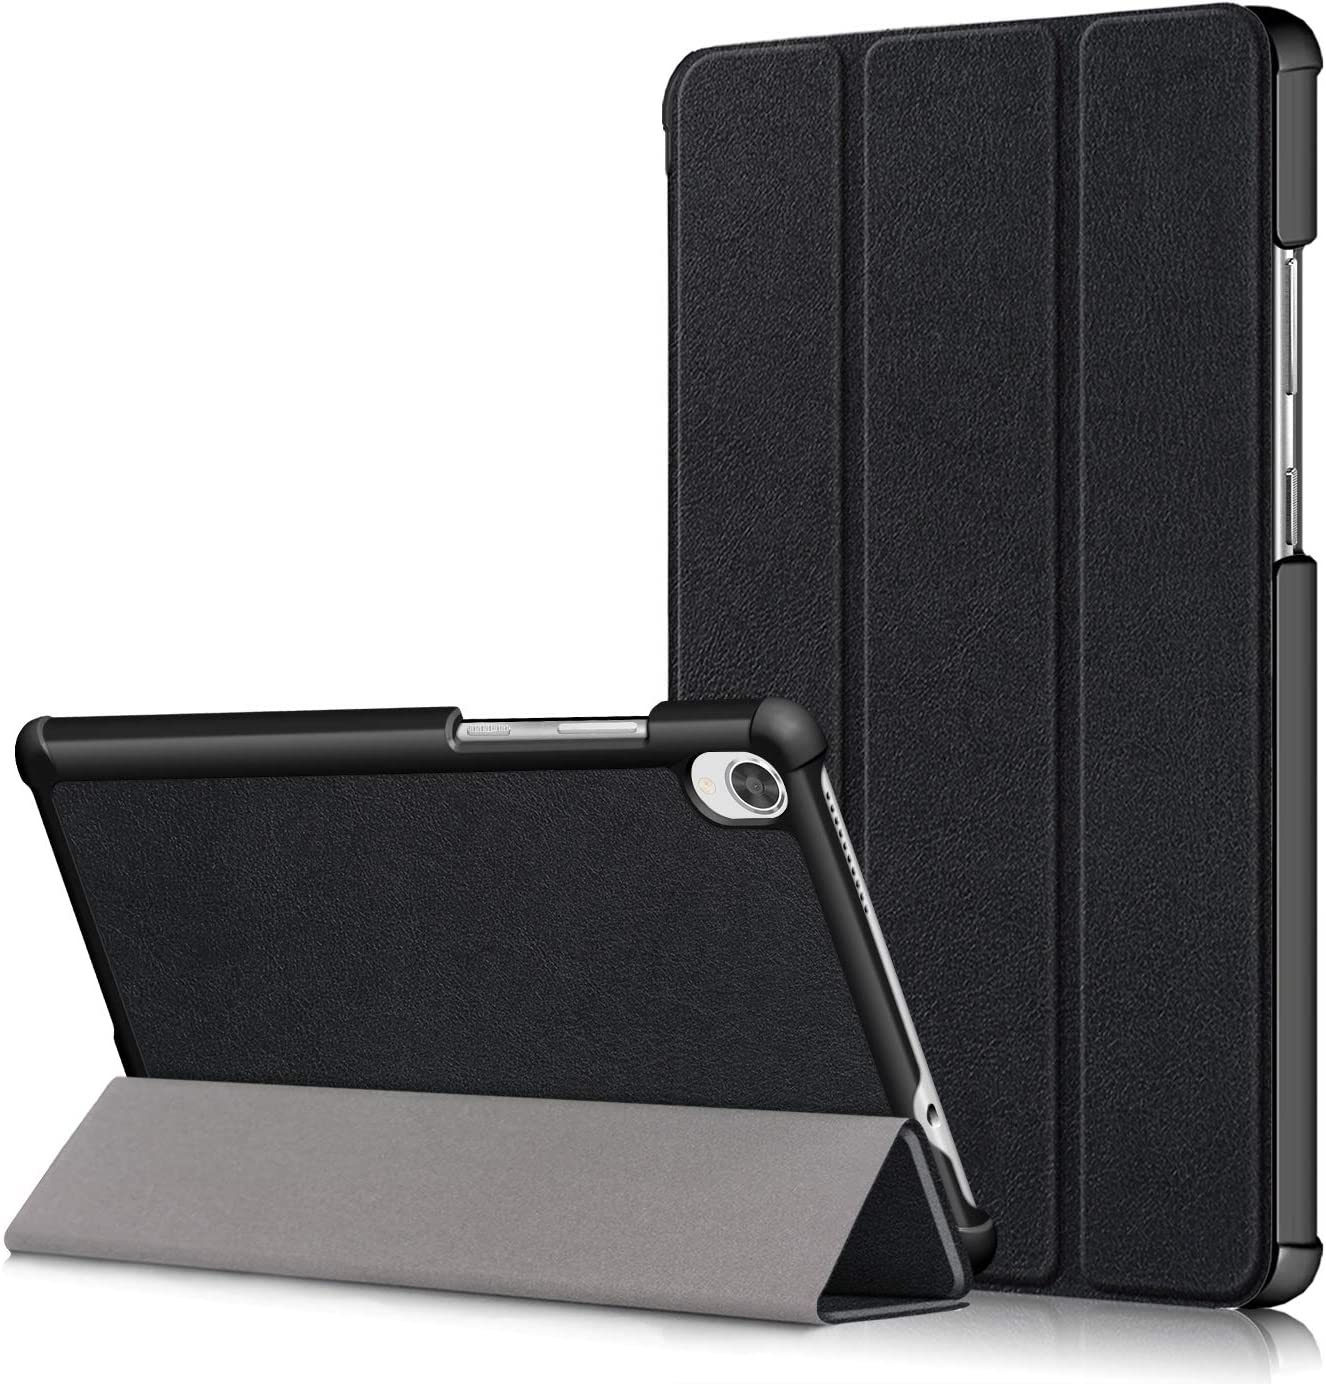 Gylint Lenovo Tab M8 Case, Smart Case Trifold Stand Slim Lightweight Case Cover for Lenovo Tab M8 FHD TB-8705F / TB-8705N / TB-8505F / TB-8505X Tablet Black